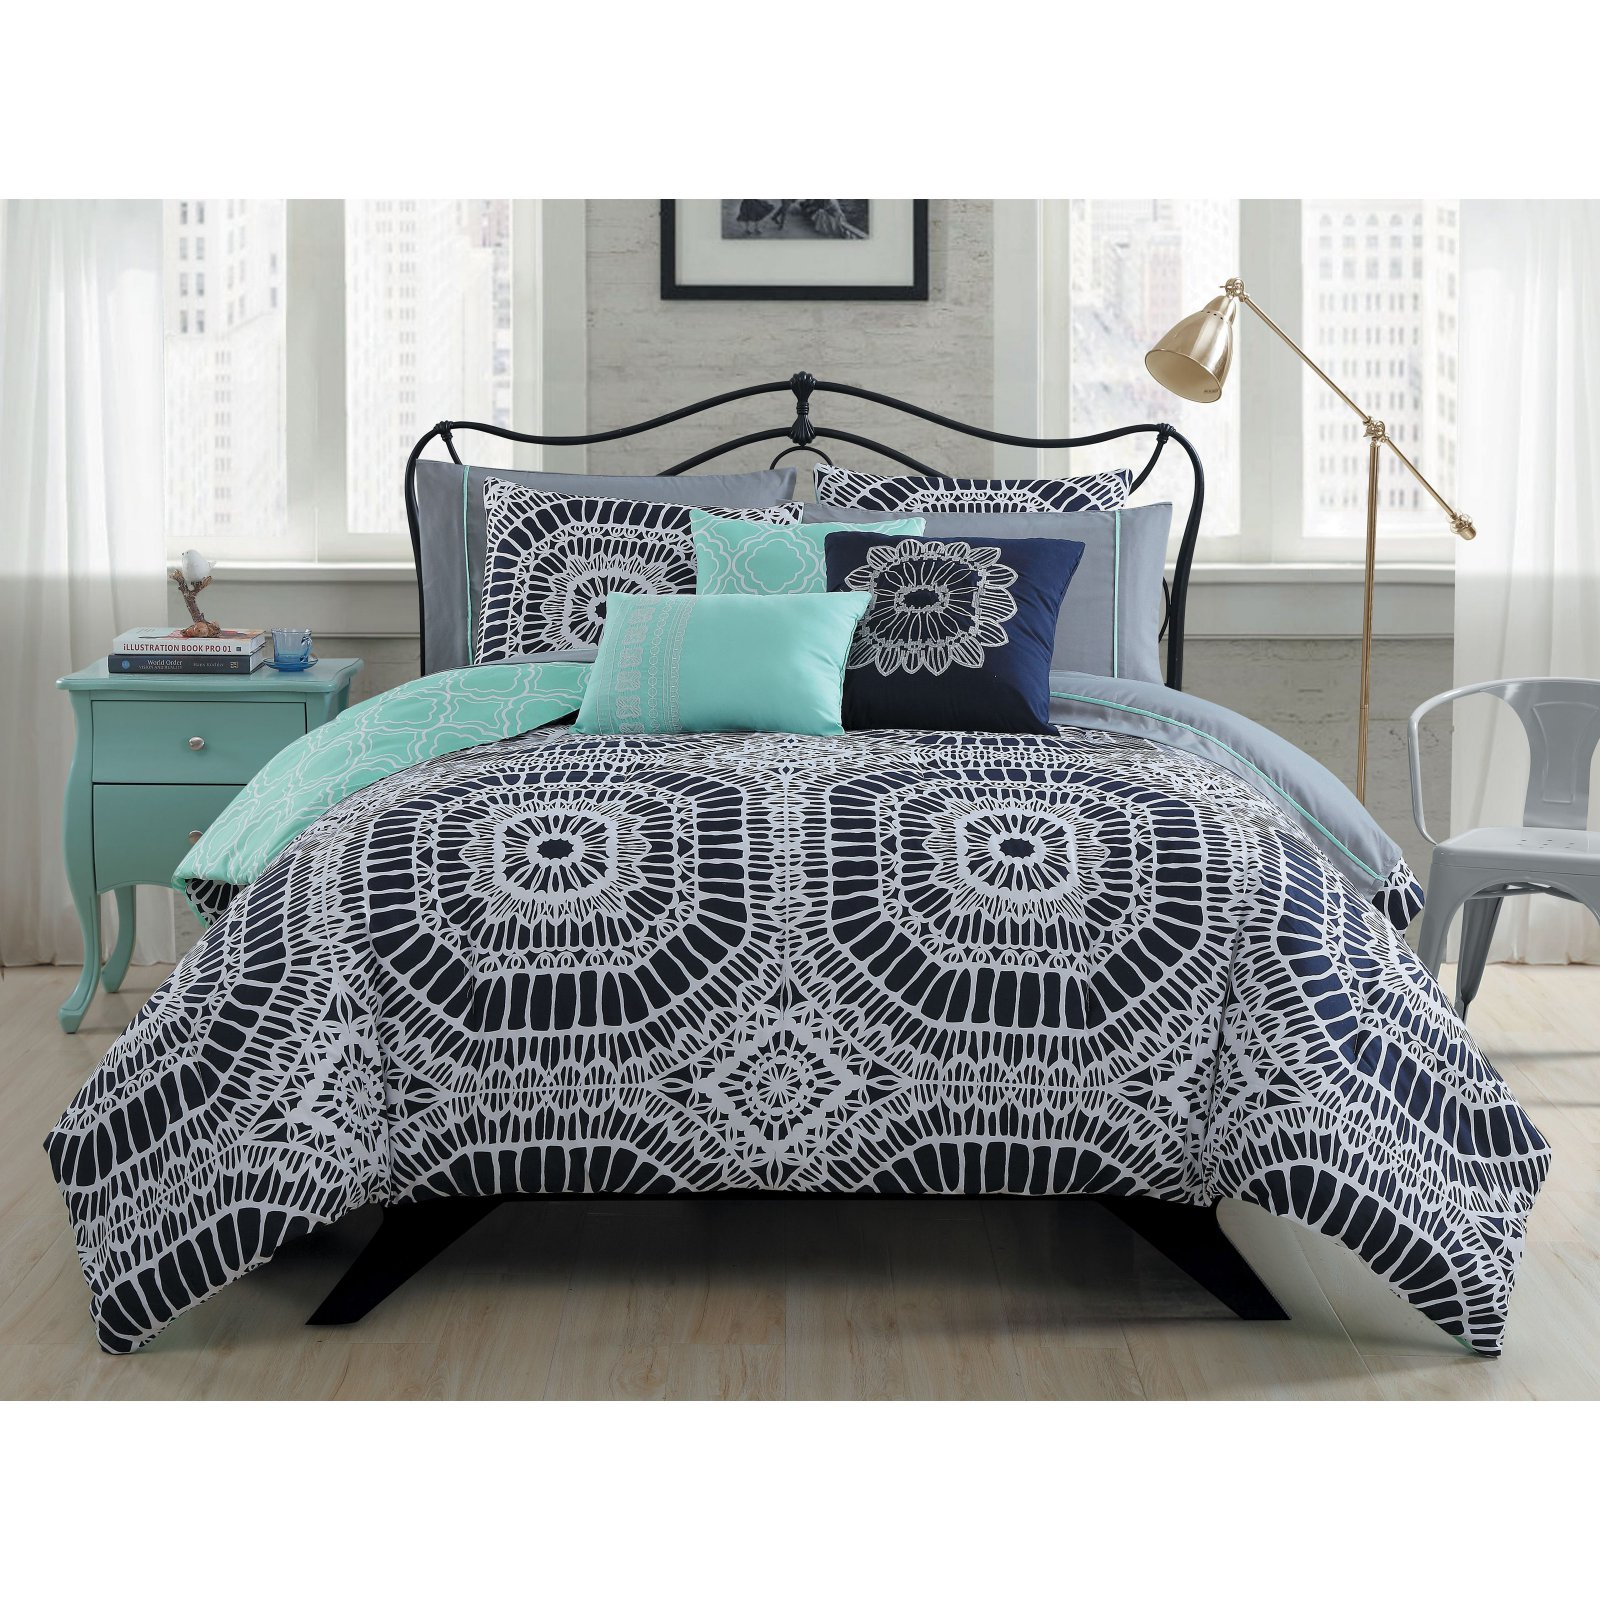 Petra 10 Piece Bed in a Bag by Avondale Manor